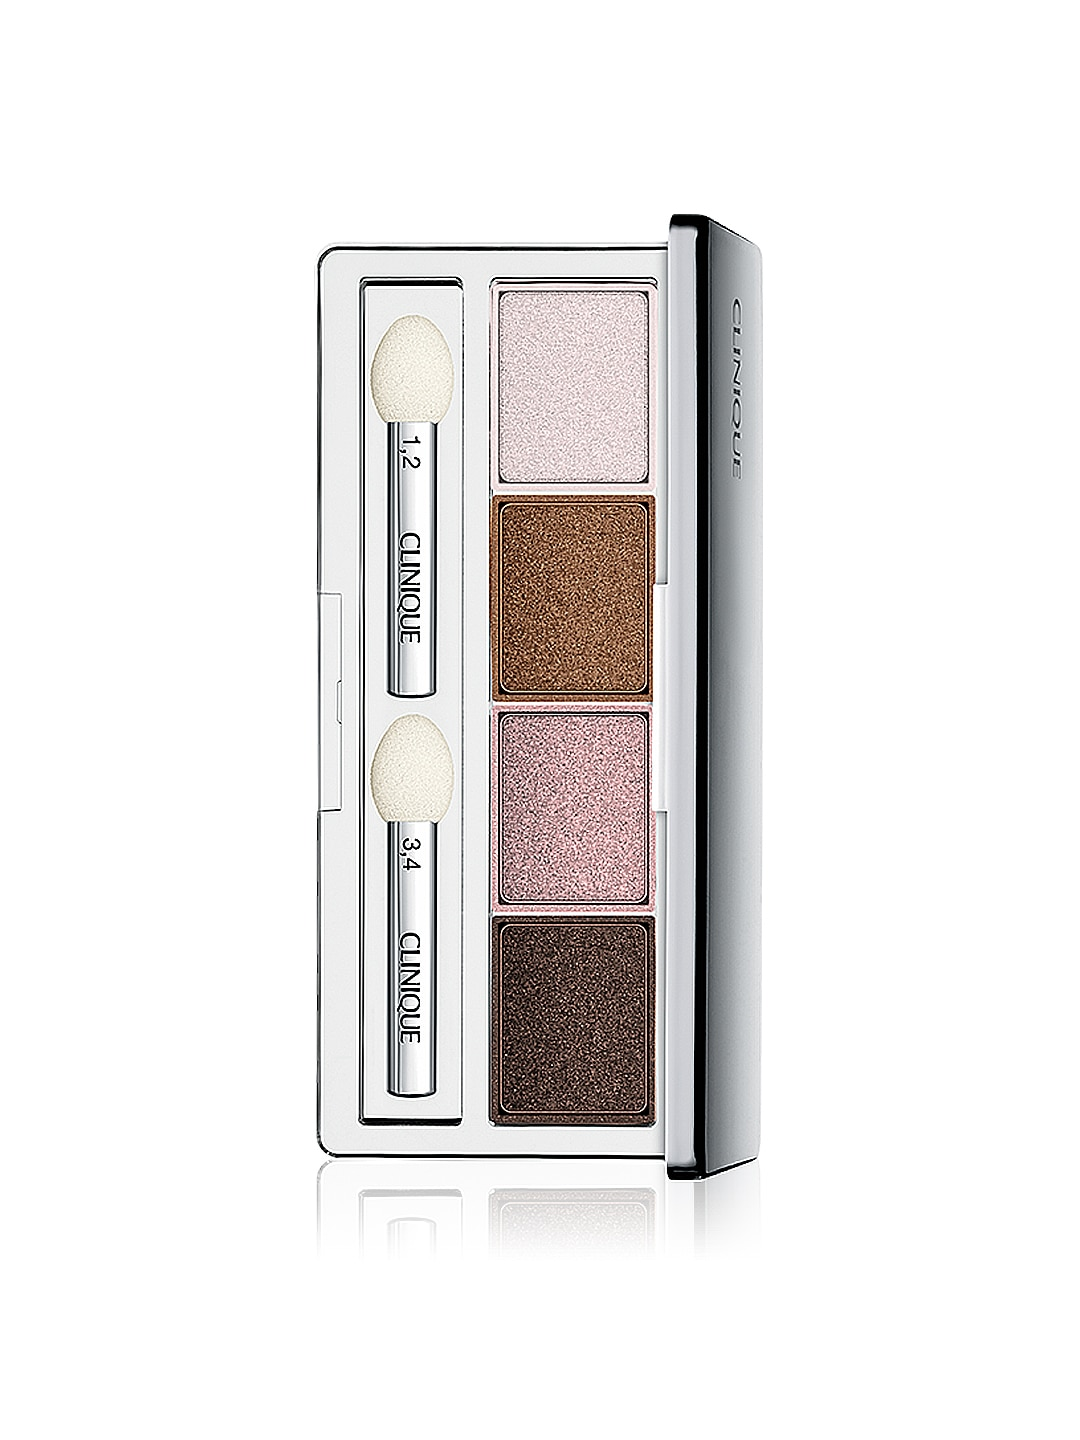 Clinique Pink Chocolate All About Shadow Quad image